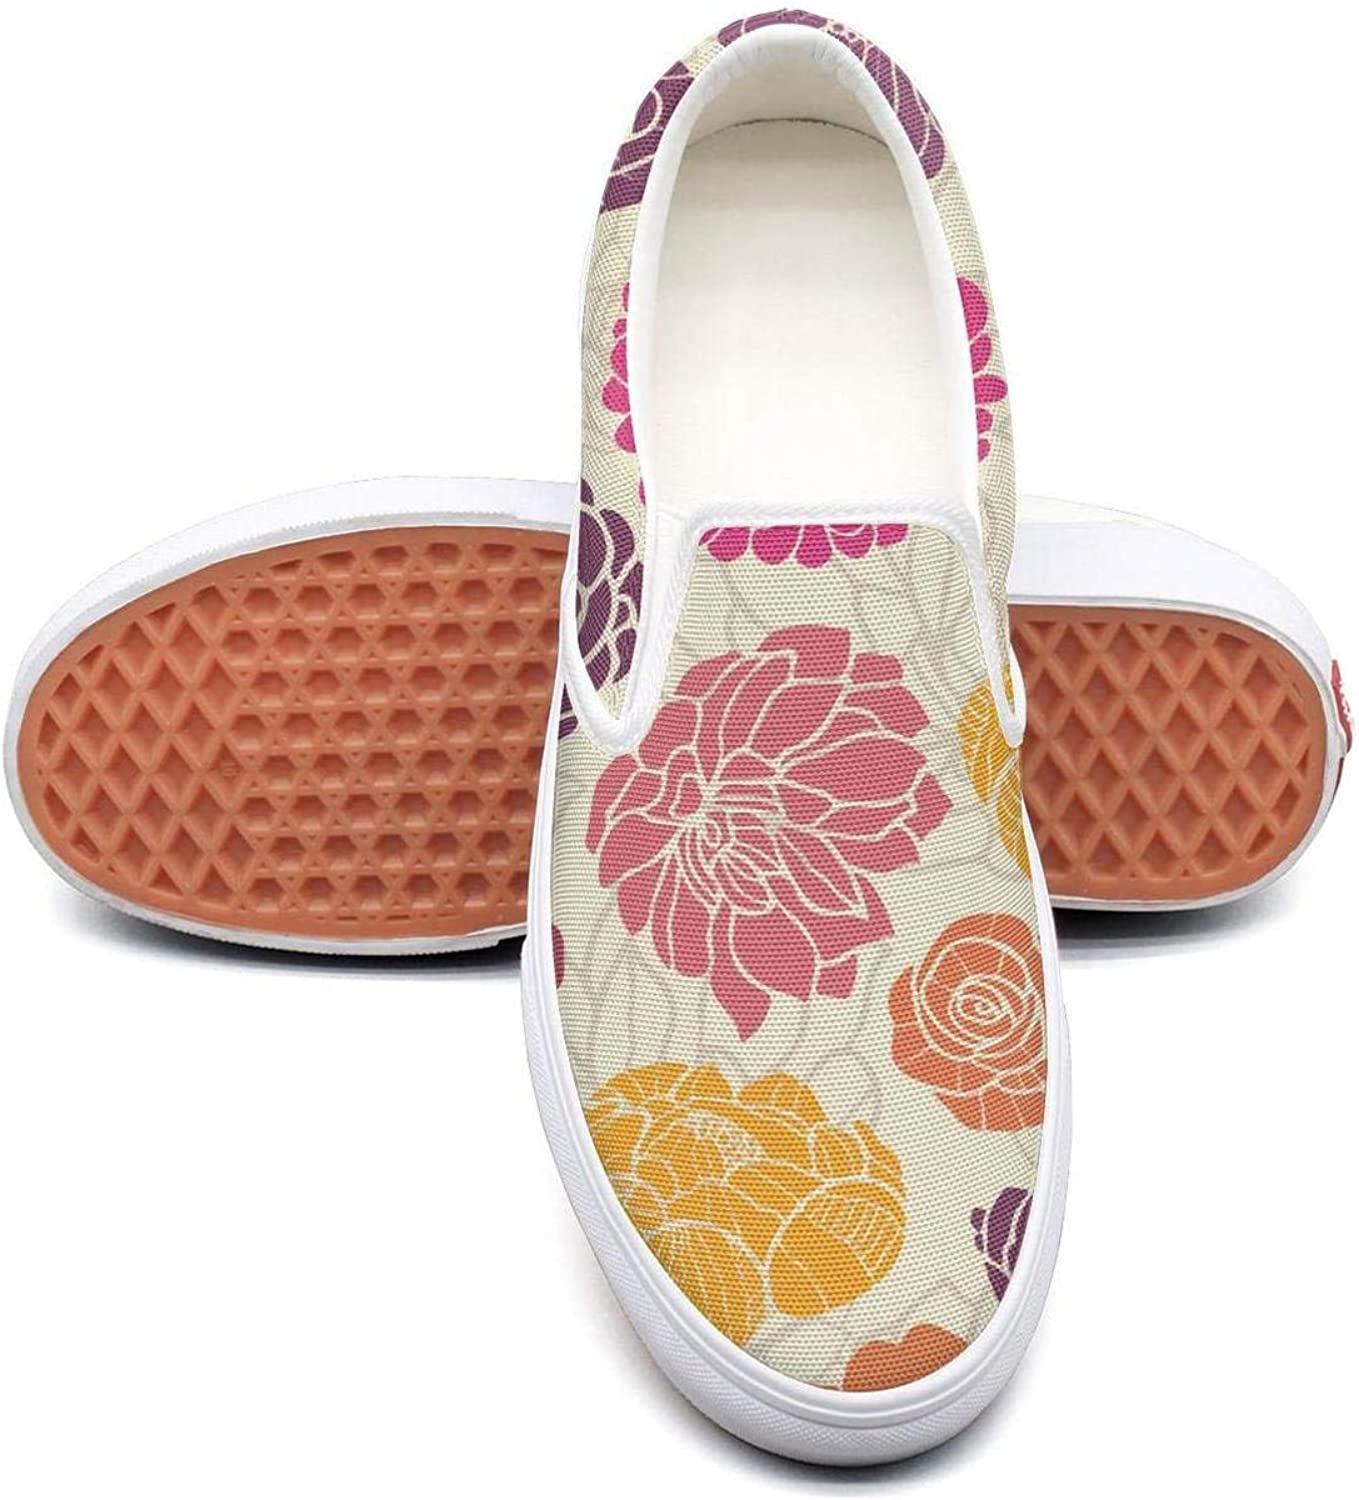 RegiDreae Canvas Slip on Sneakers for Women colorful Abstract Peonies Flowers Fashion Sneaker